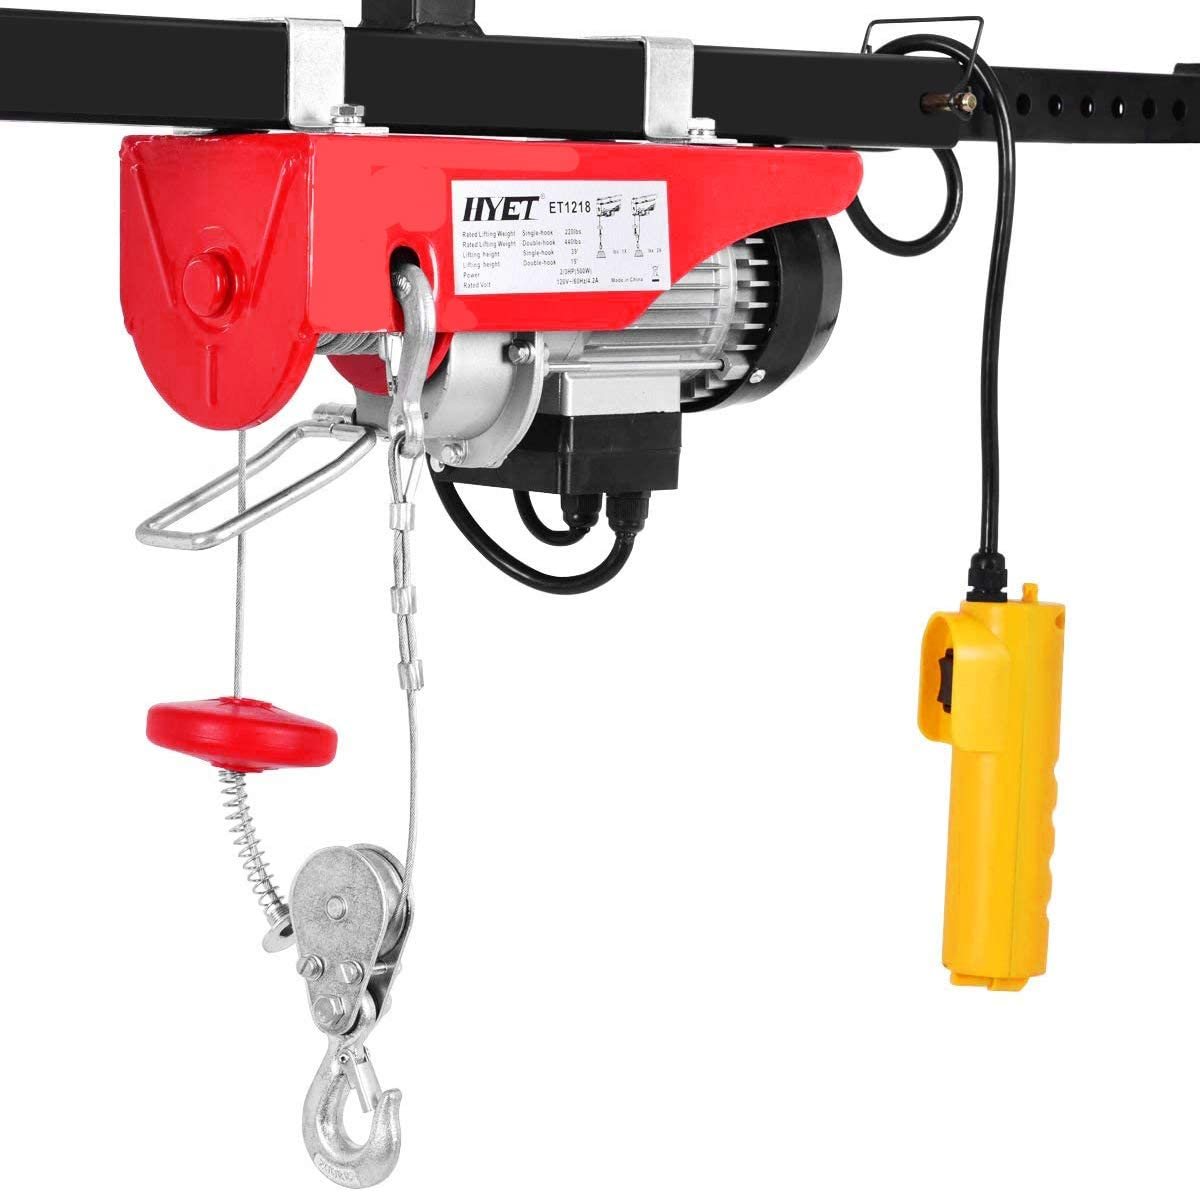 Ehoistul Electric Hoist Wiring Diagram Libraries Wire Rope Amazon Com Power Hoists U0026 Accessories Industrial